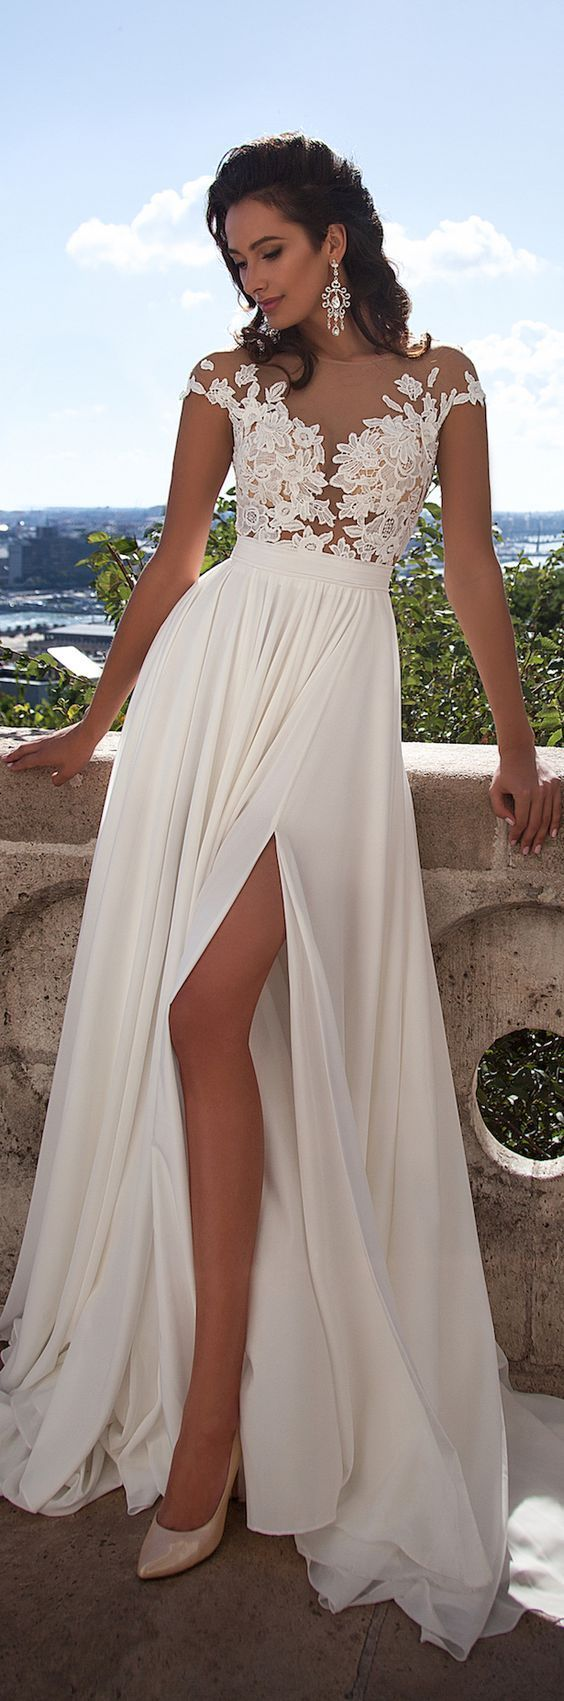 Best 25 chiffon wedding dresses ideas only on pinterest for Beach chiffon wedding dress